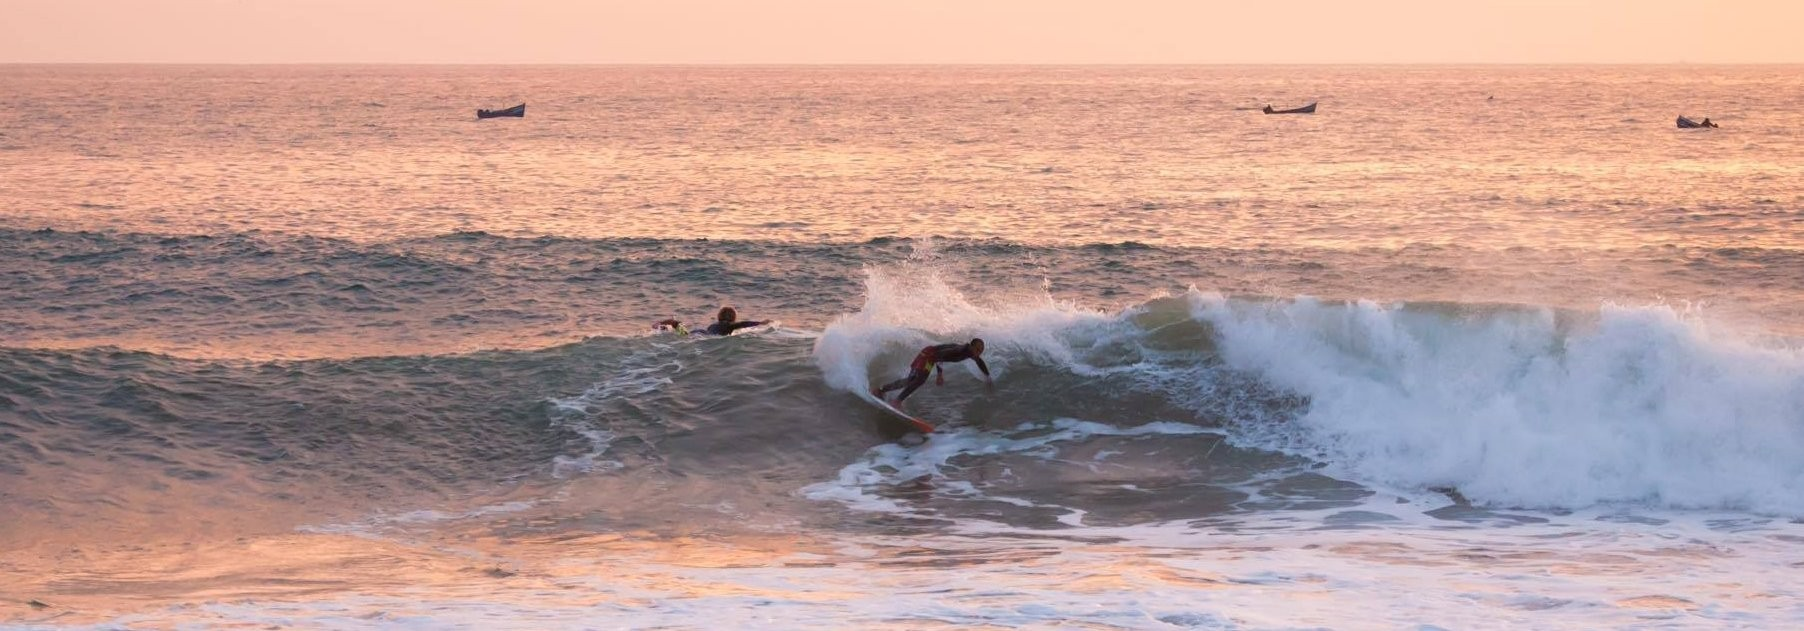 7 Night Offshore Yoga Retreat in Morocco at Offshore Surf Morocco